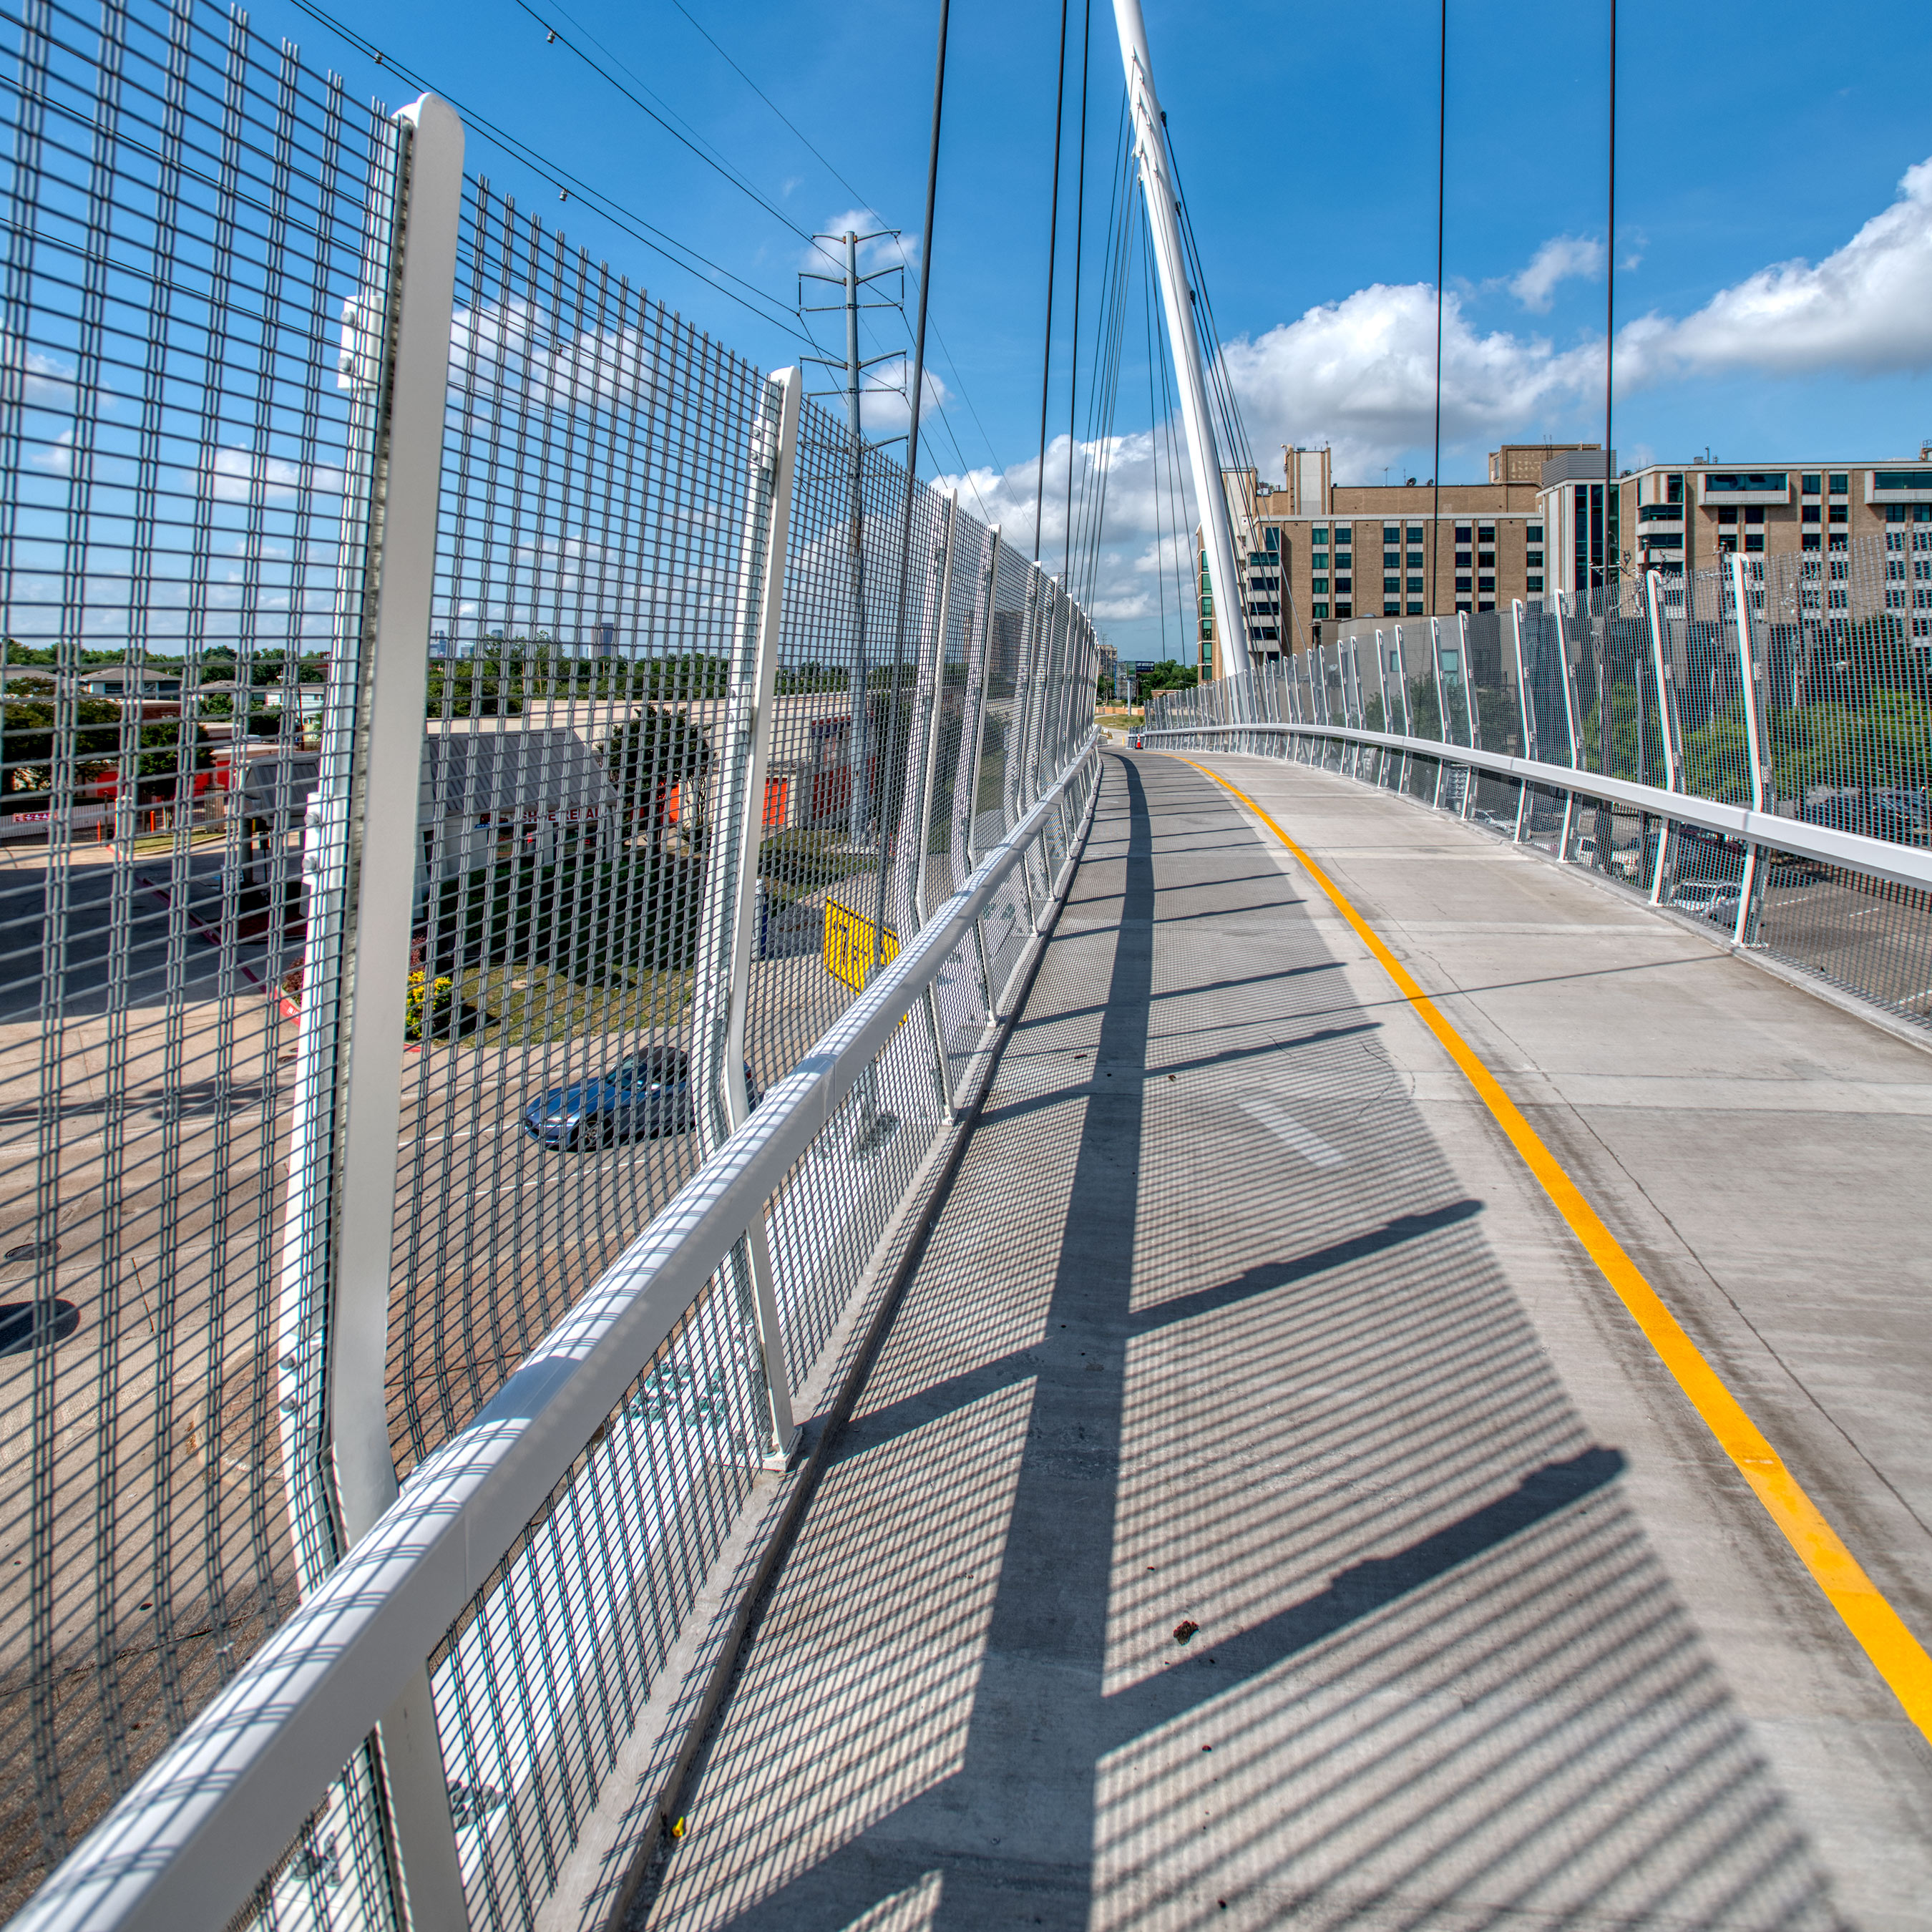 Banker Wire's M13Z-146 is an all-purpose woven wire mesh pattern who's large percent open area is well suited for the Mockingbird Bridge in Dallas, Texas.